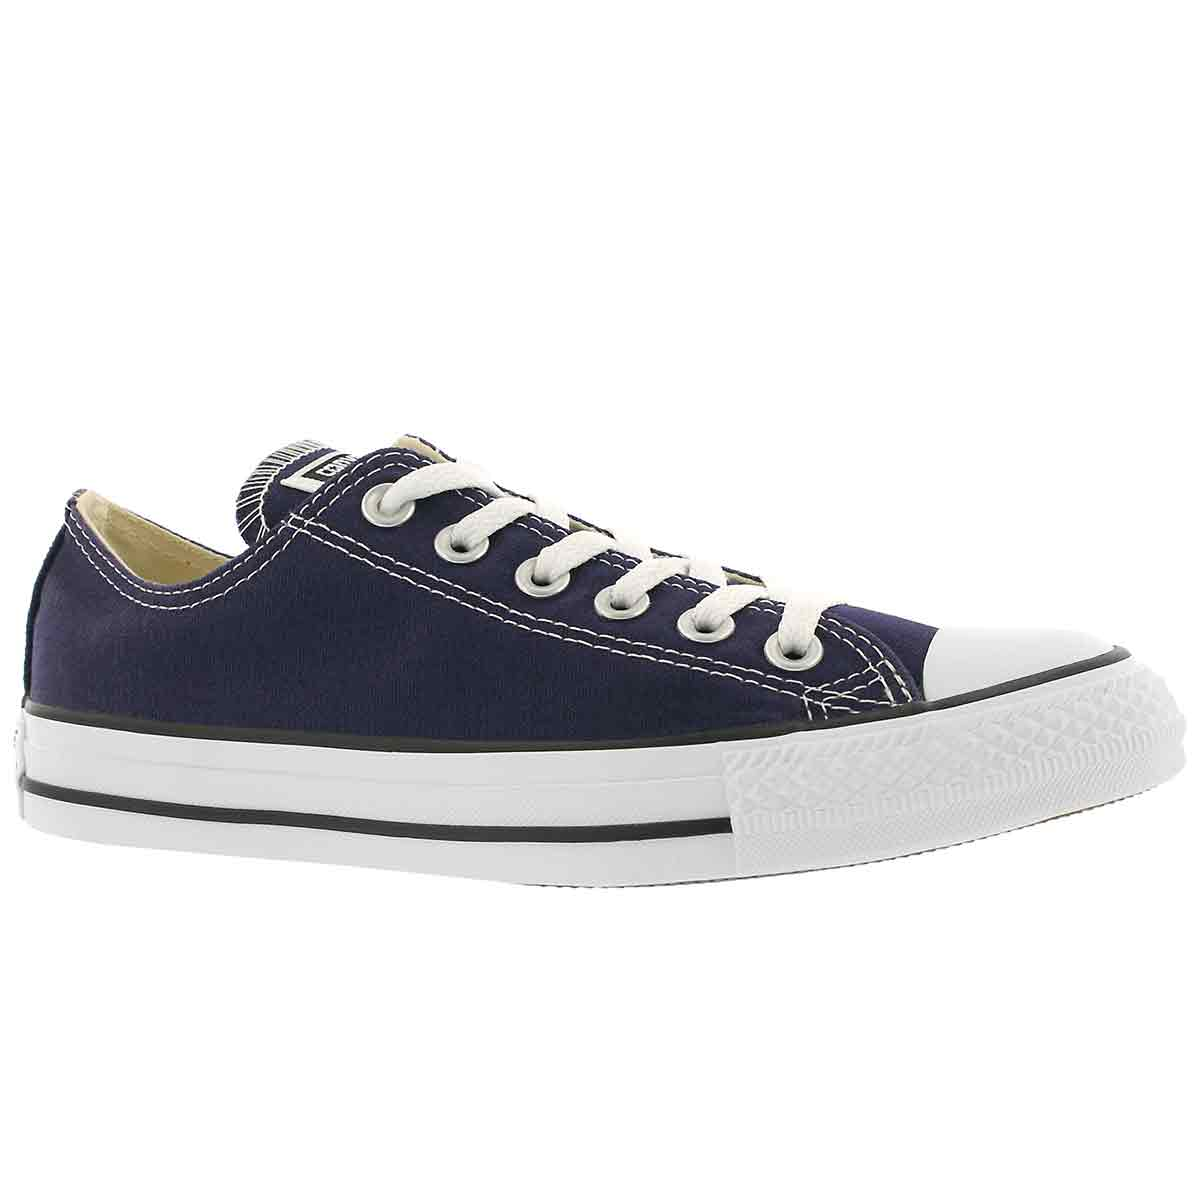 Women's CT ALL STAR SEASONAL mdnght ind sneakers